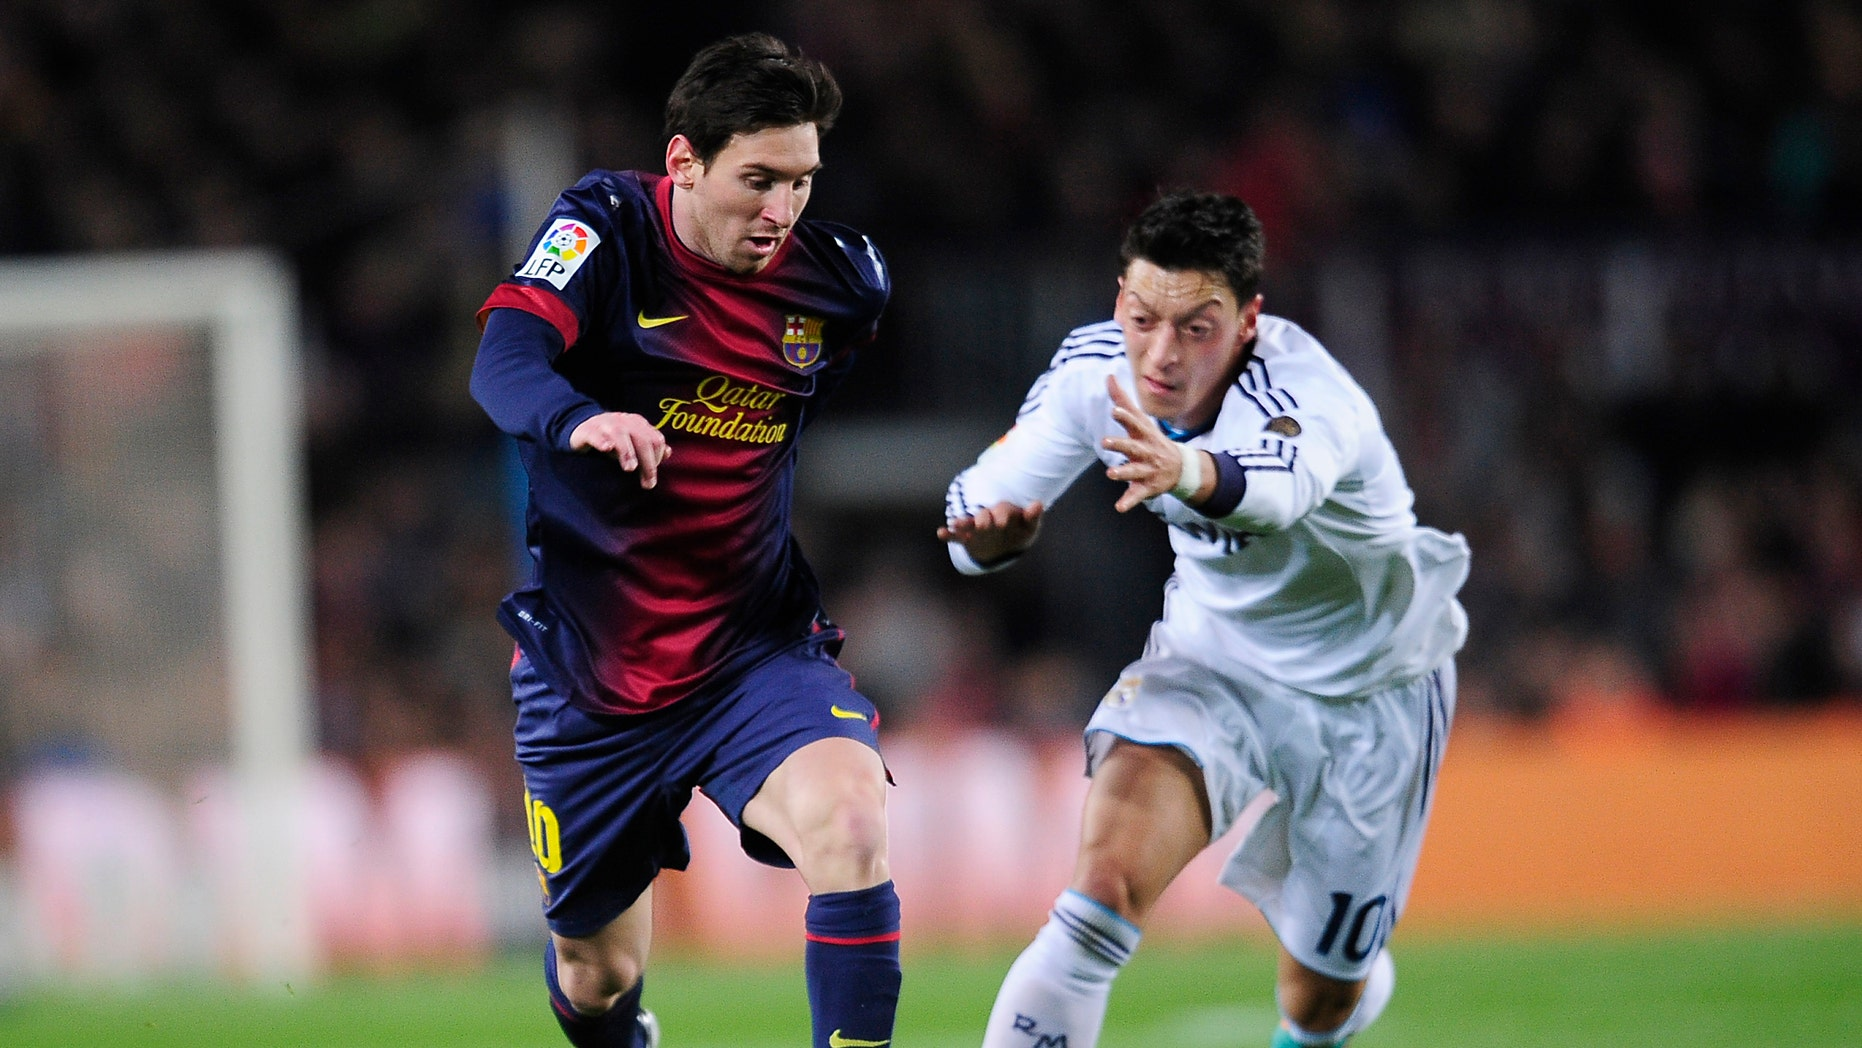 Barcelona's Lionel Messi from Argentina, left, and Real's Mesut Ozil from Germany challenge for the ball during a Copa del Rey soccer match between FC Barcelona and Real Madrid at the Camp Nou stadium in Barcelona, Spain, Tuesday, Feb. 26, 2013. (AP Photo/Manu Fernandez)